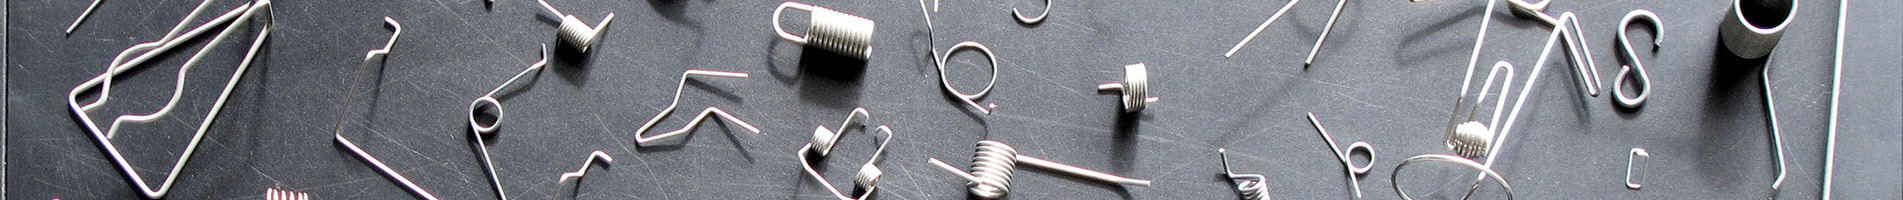 a selection of custom springs in a banner image